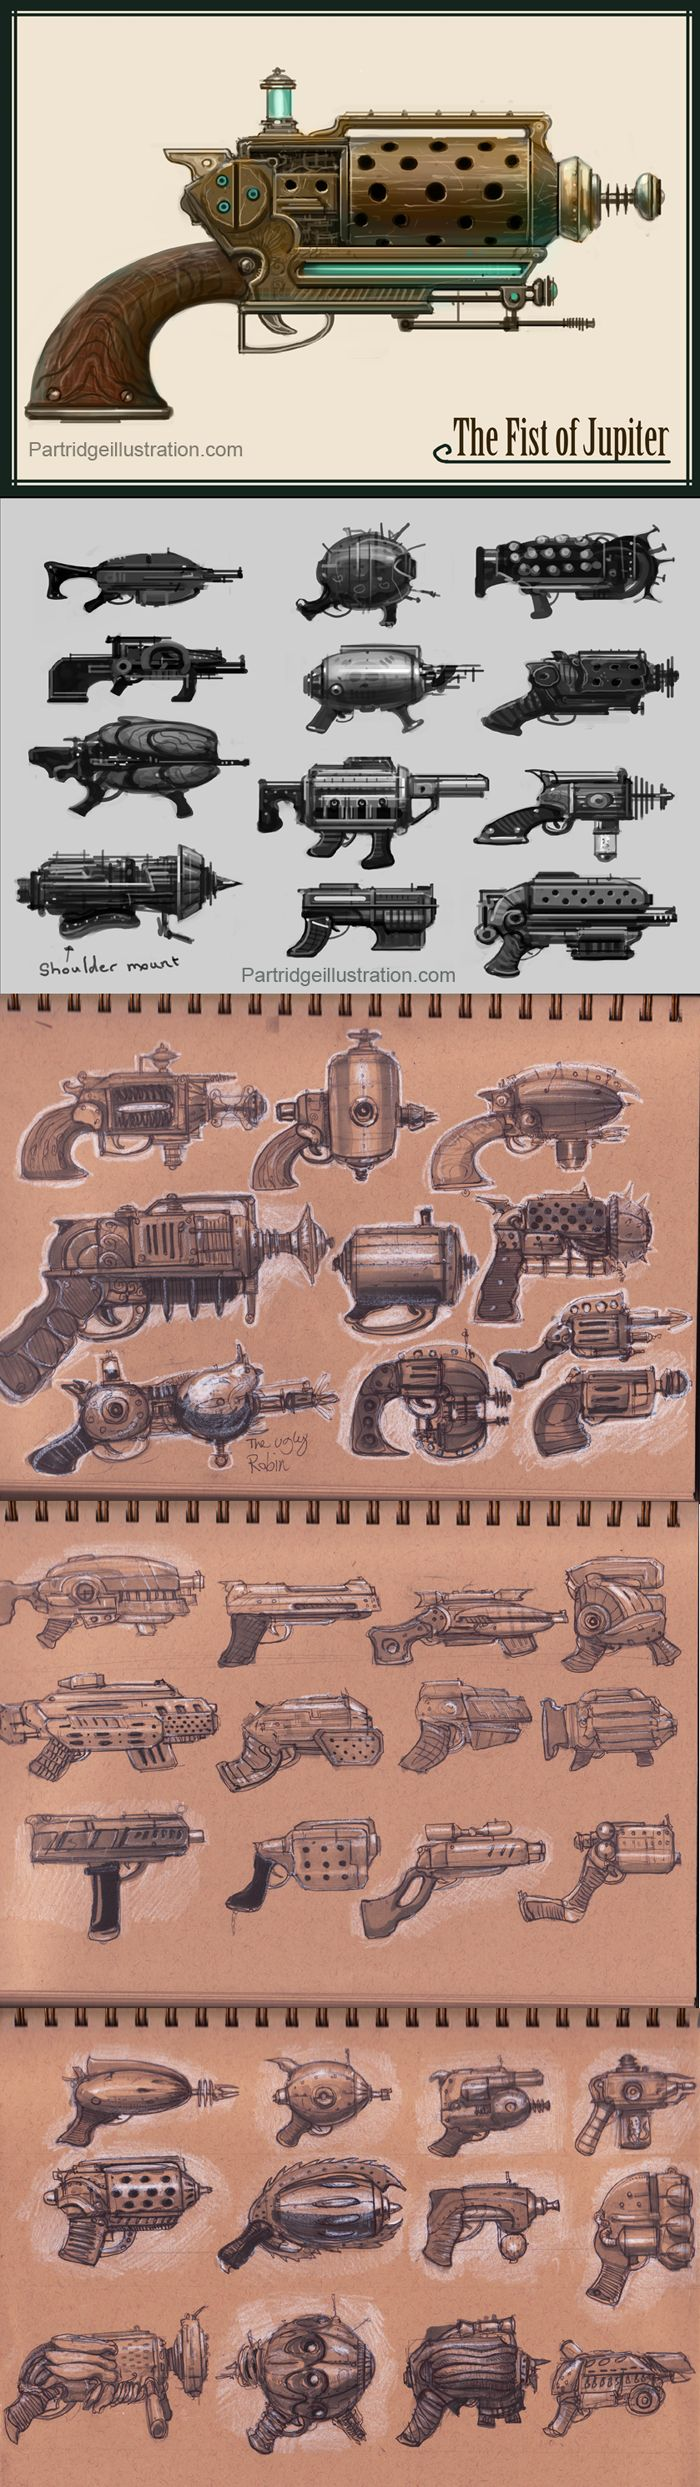 The Art of Richard Partridge - Steampunk Gun: The Fist of Jupiter, Retro futurism back to the future tomorrow tomorrowland space spaceship planet planets starship stars starbase spaceport age sci-fi science fiction pulp martians BEM's alien aliens ray raygun blaster phaser